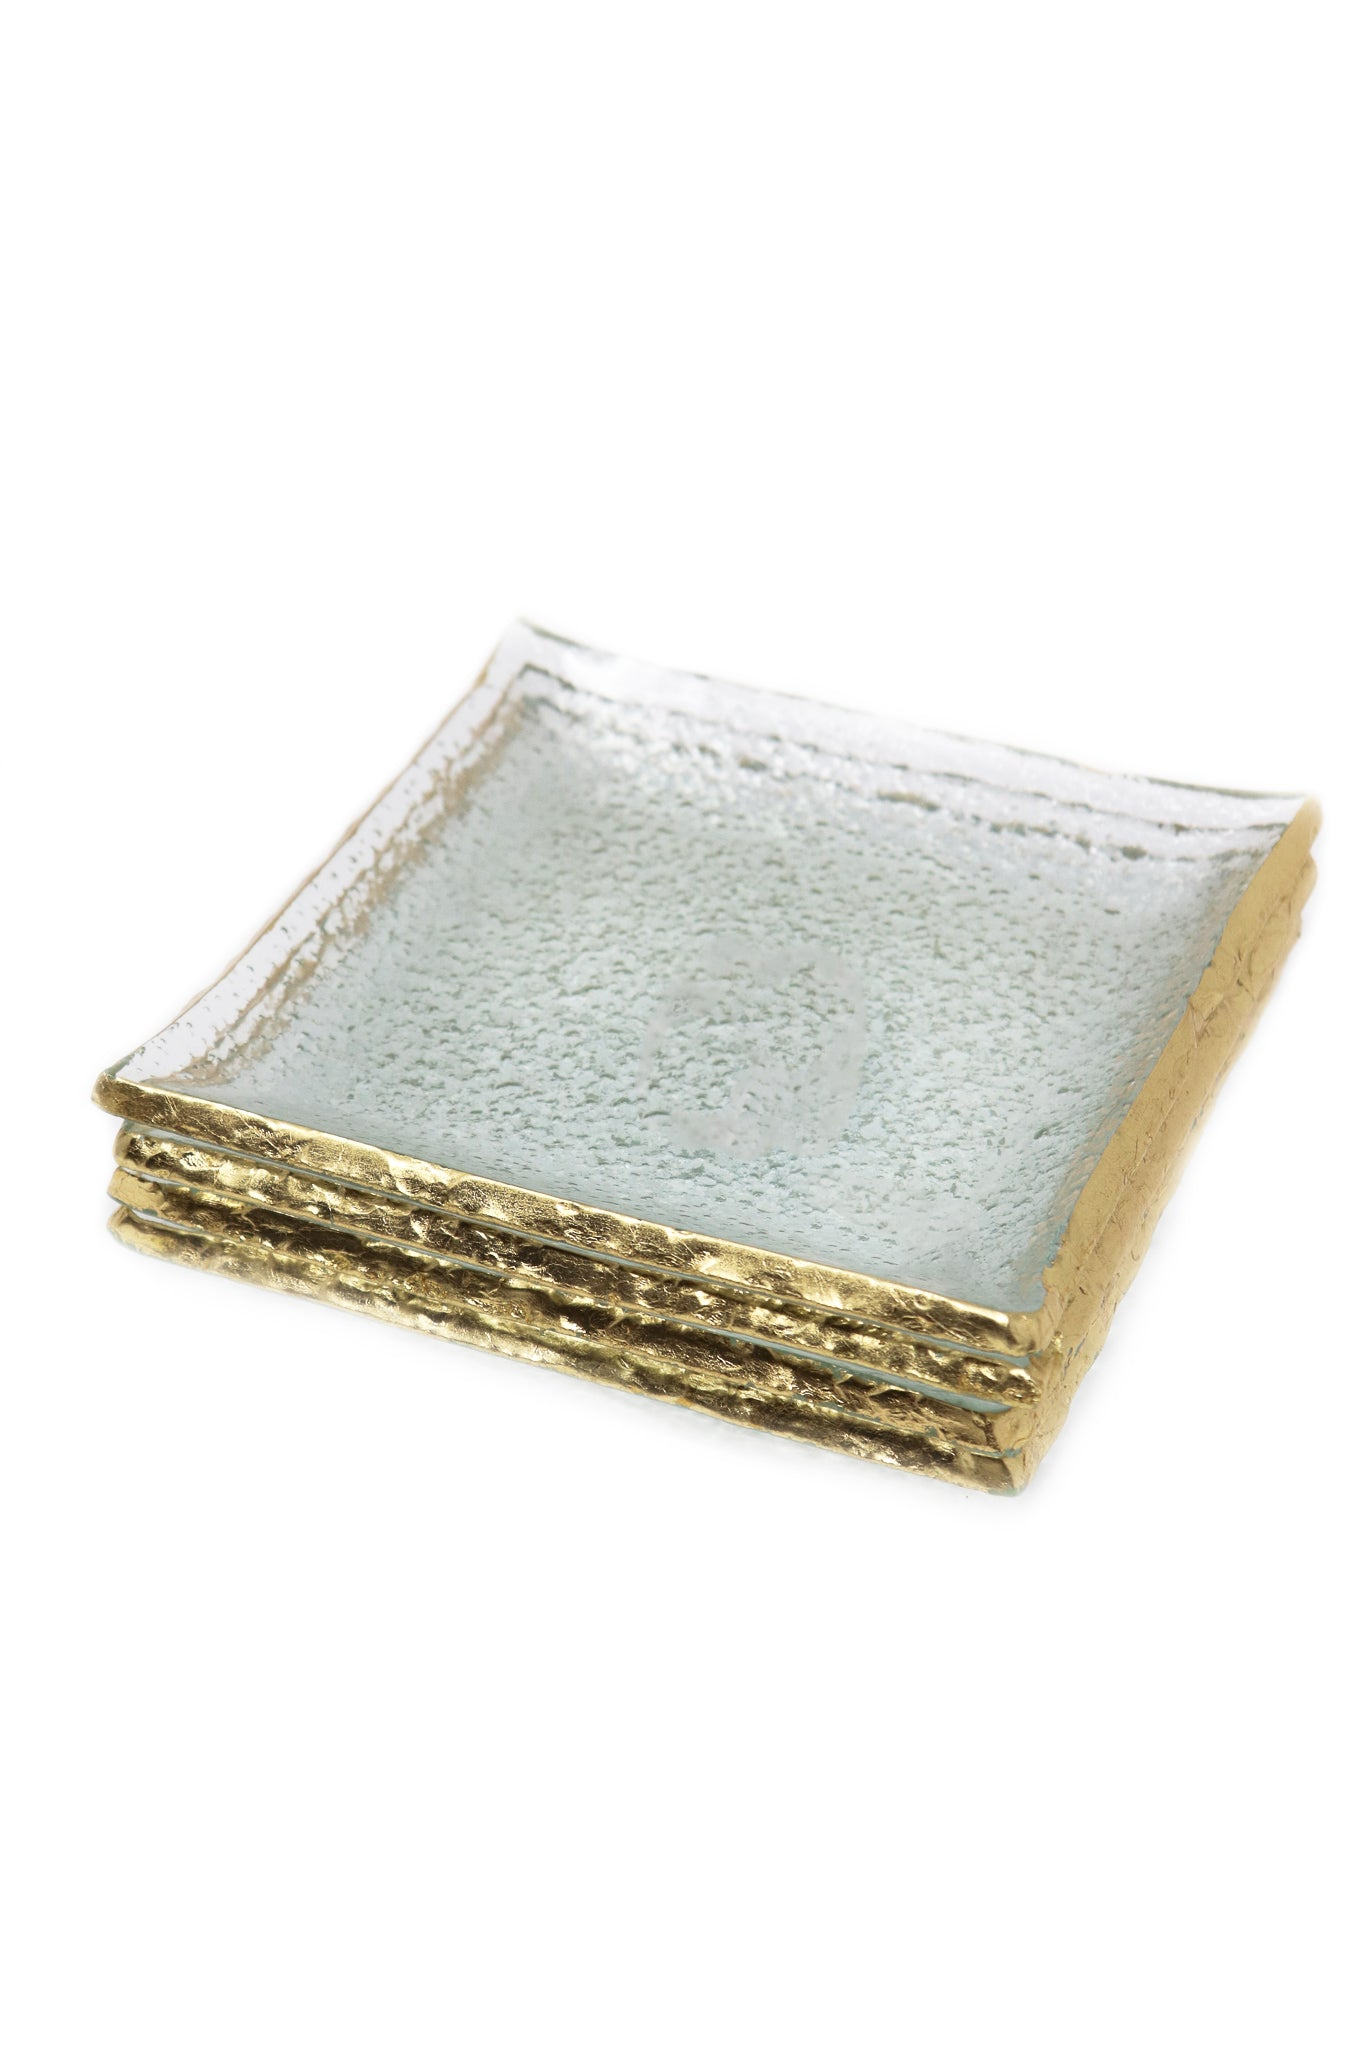 "Goldedge Handcrafted Crystal 5"" Square Plate Set - Gabrielle's Biloxi"